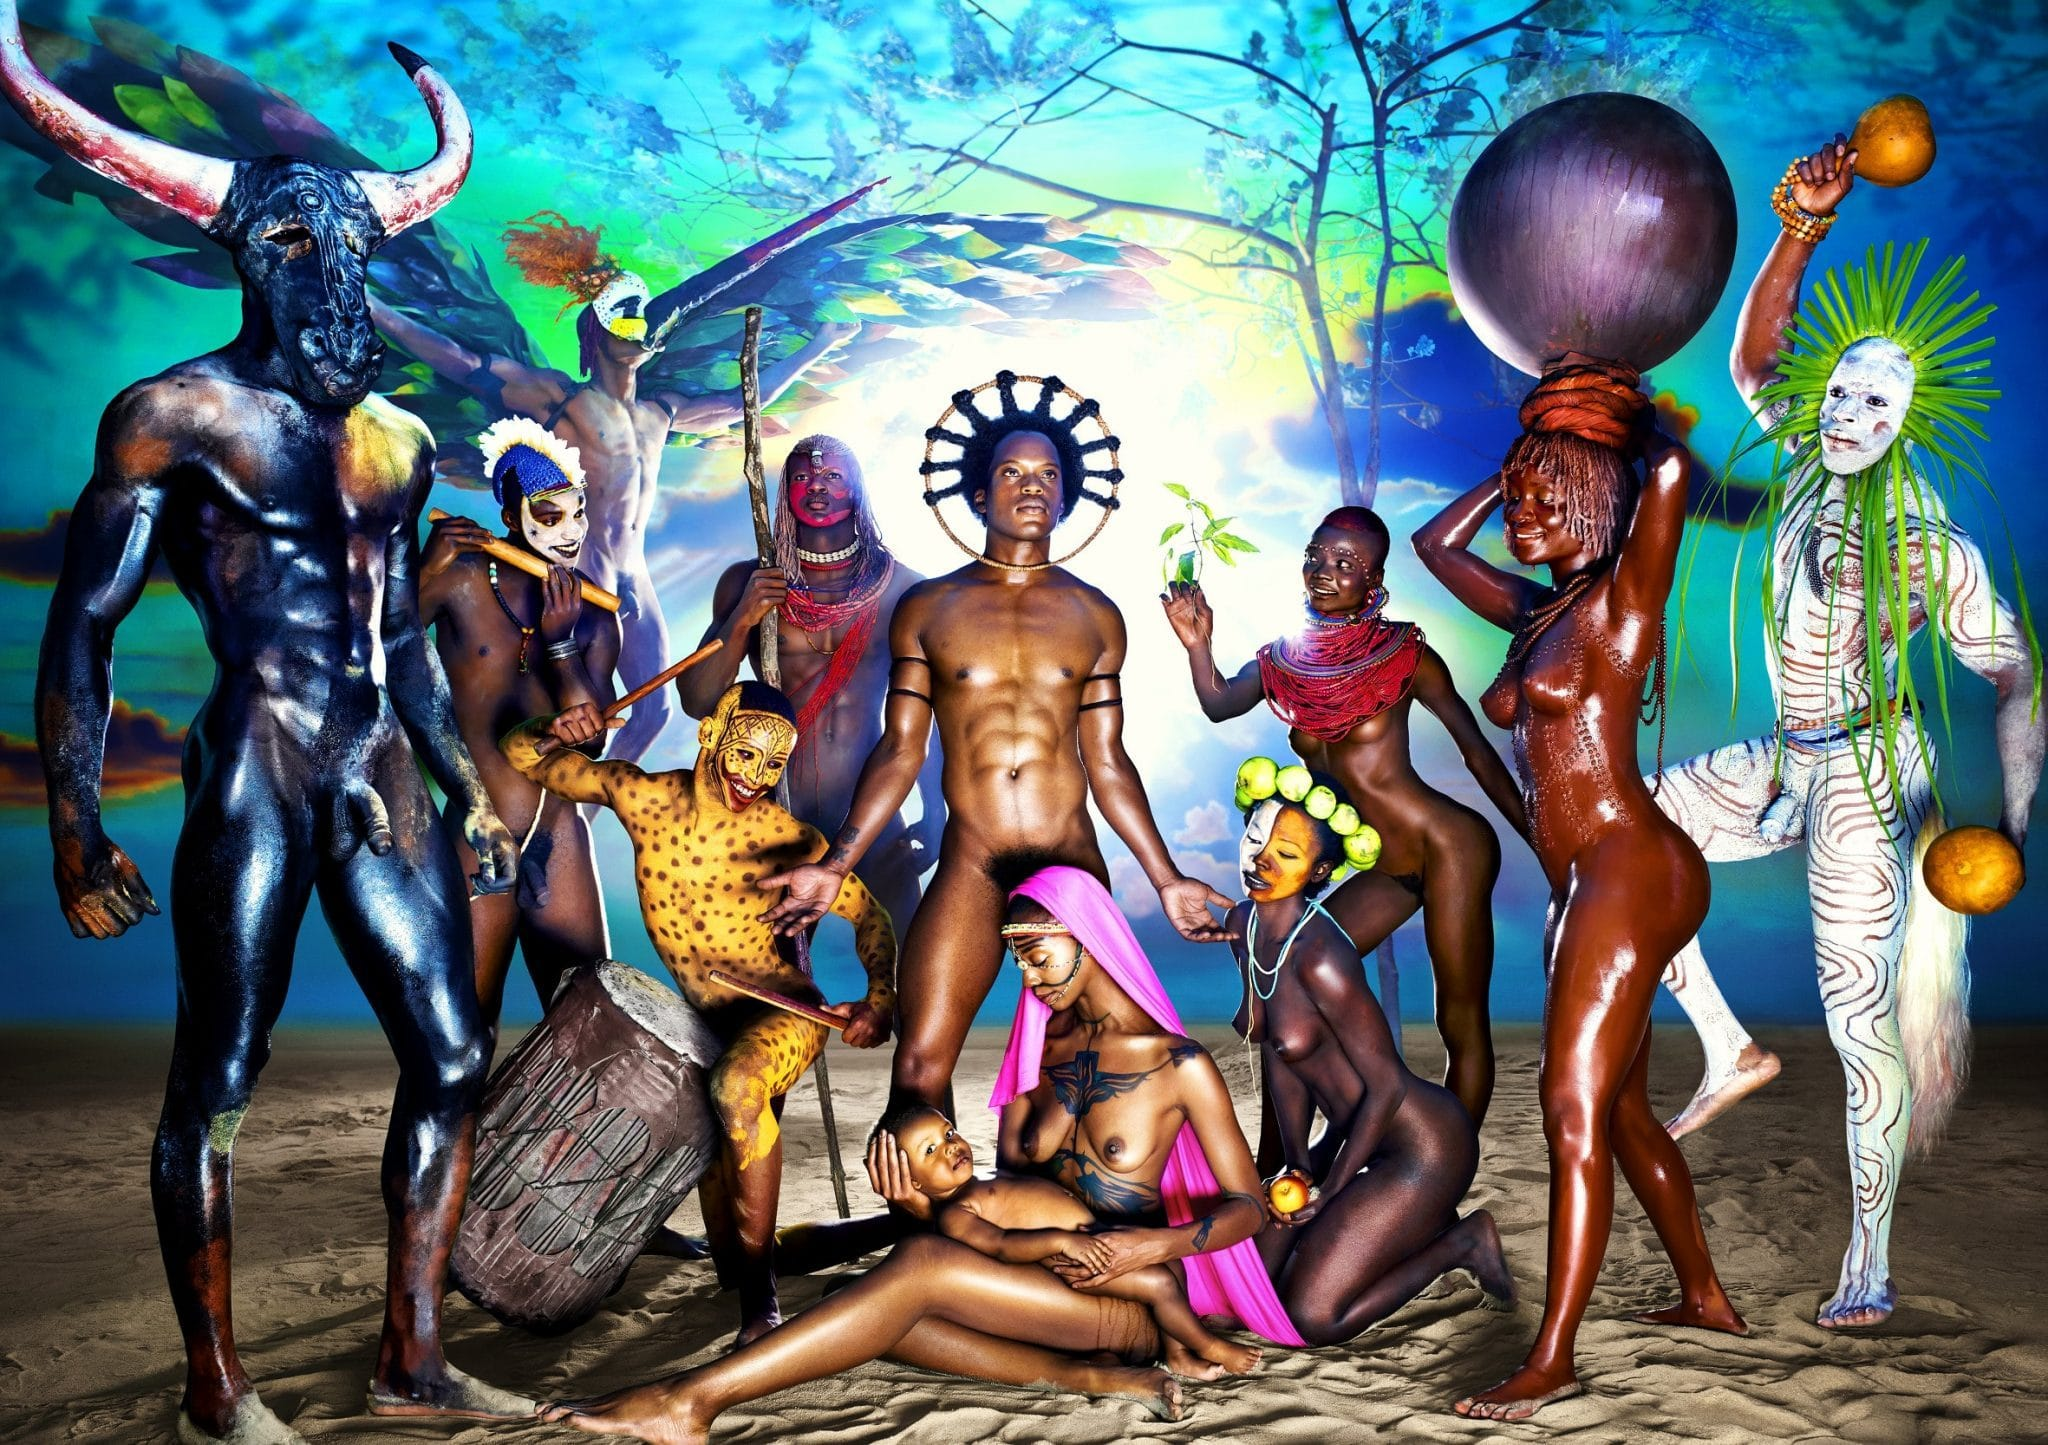 Exposition David LaChapelle. After the deluge — Bam Mons image Nativity, 2012